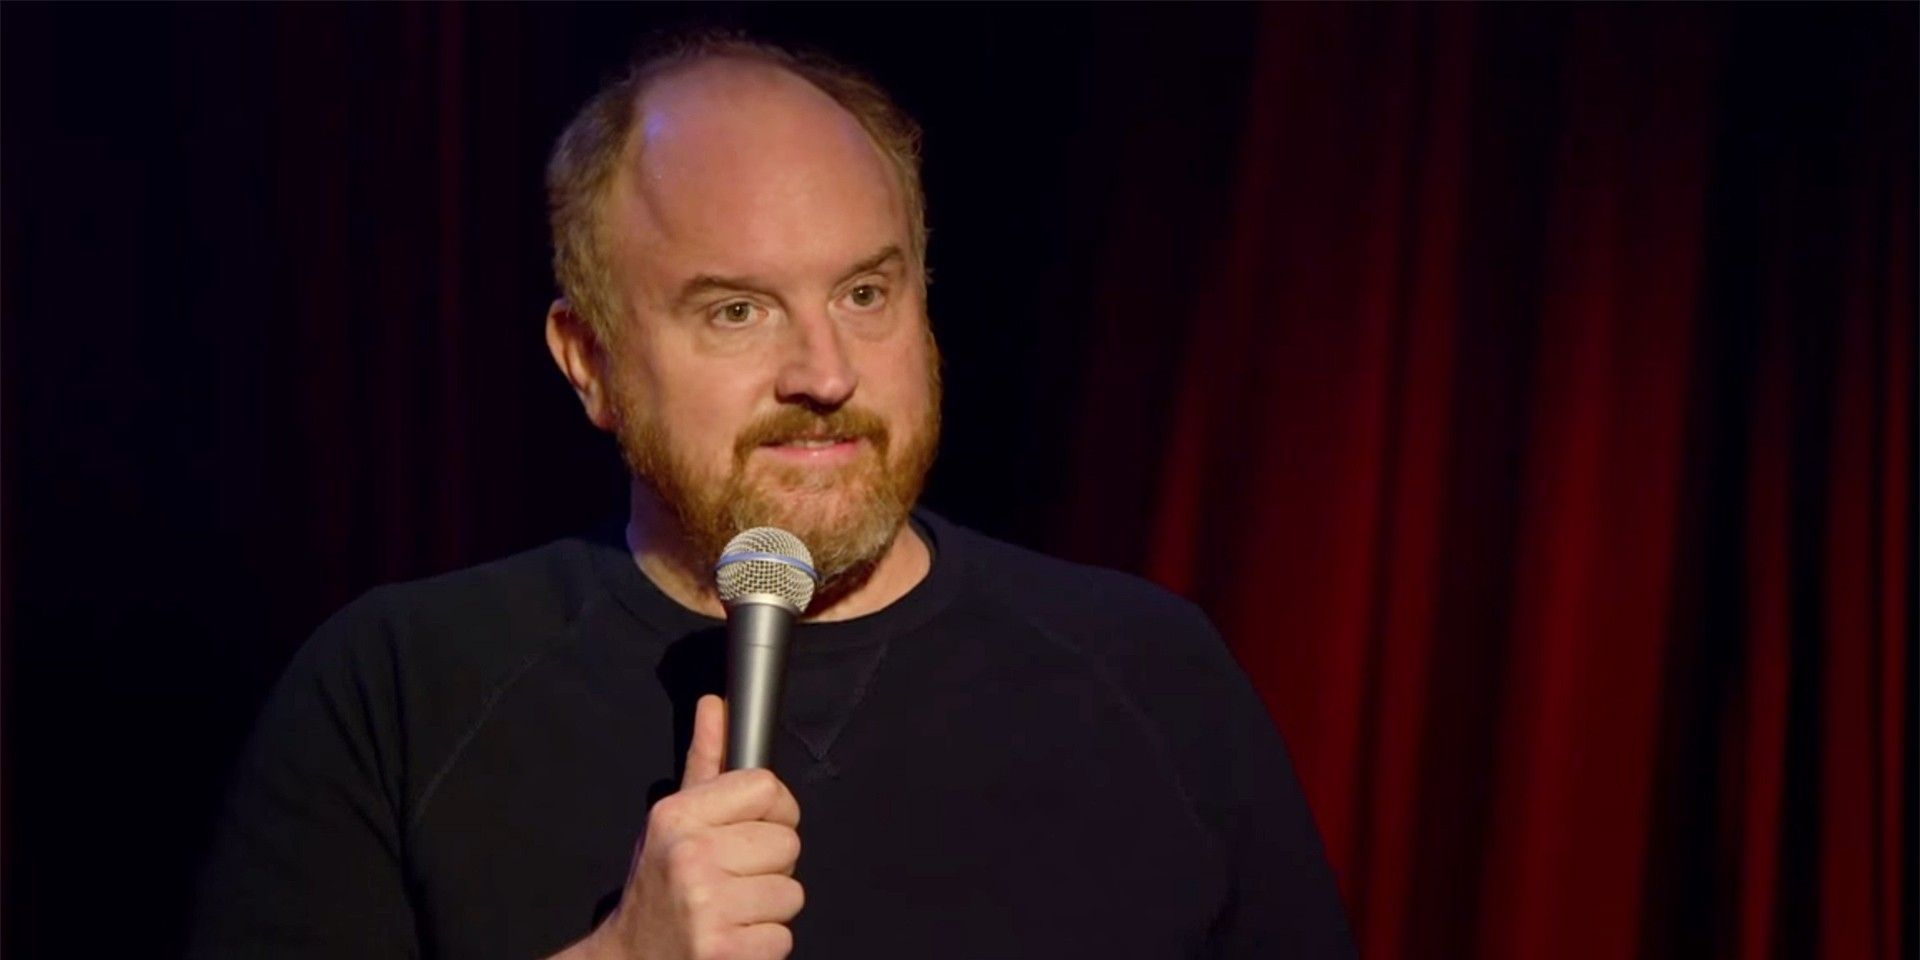 Louis C.K. Claims Sexual Misconduct Admission Cost Him $35 Million